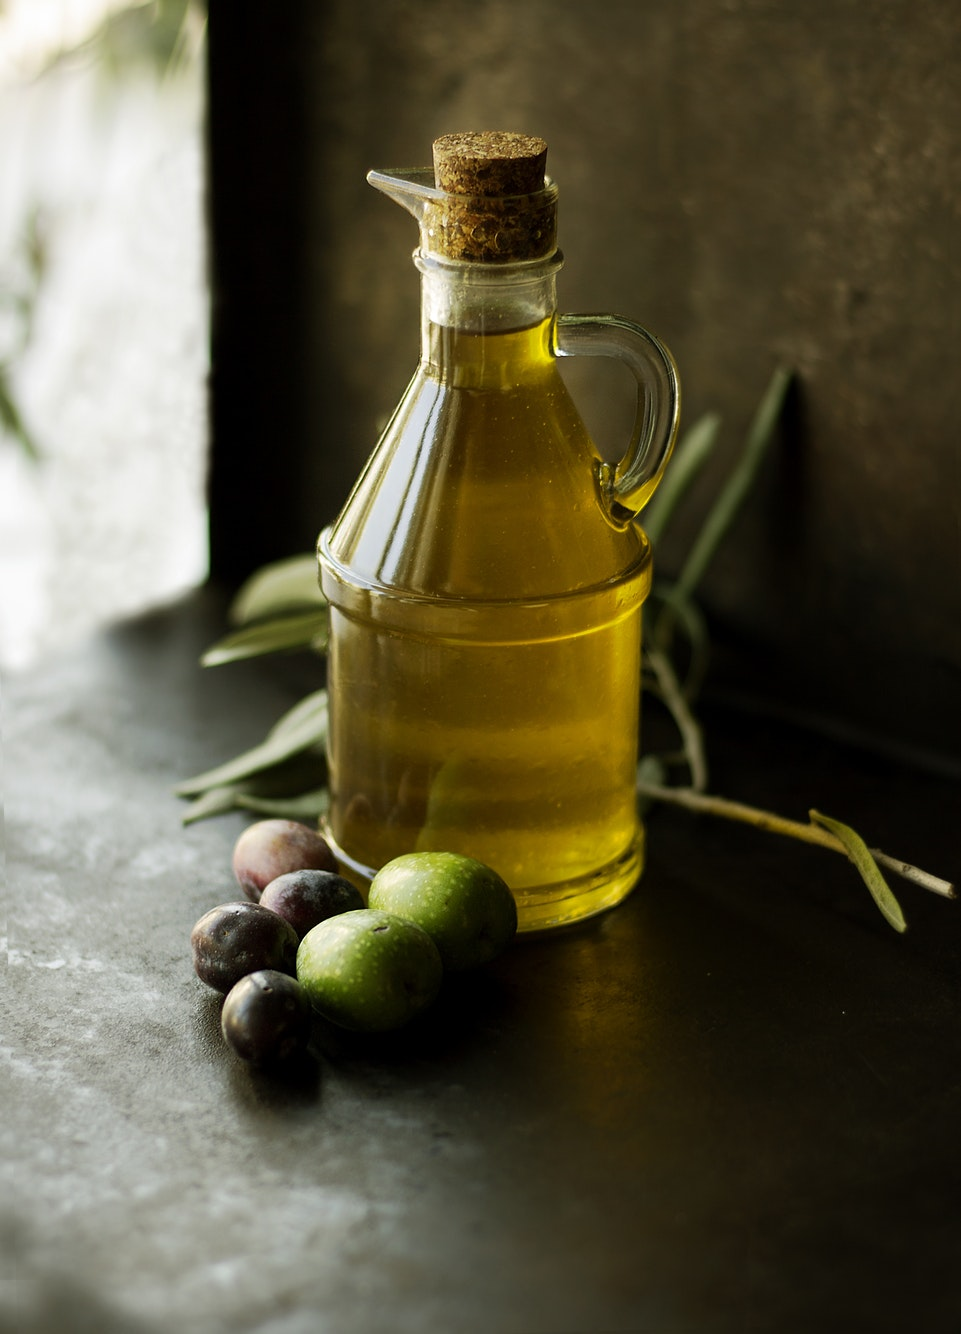 ENTITY shares 7 DIY face masks, including two variations of a brown sugar scrub. PHOTO OF OLIVE OIL VIA UNSPLASH/@ROBERTINA